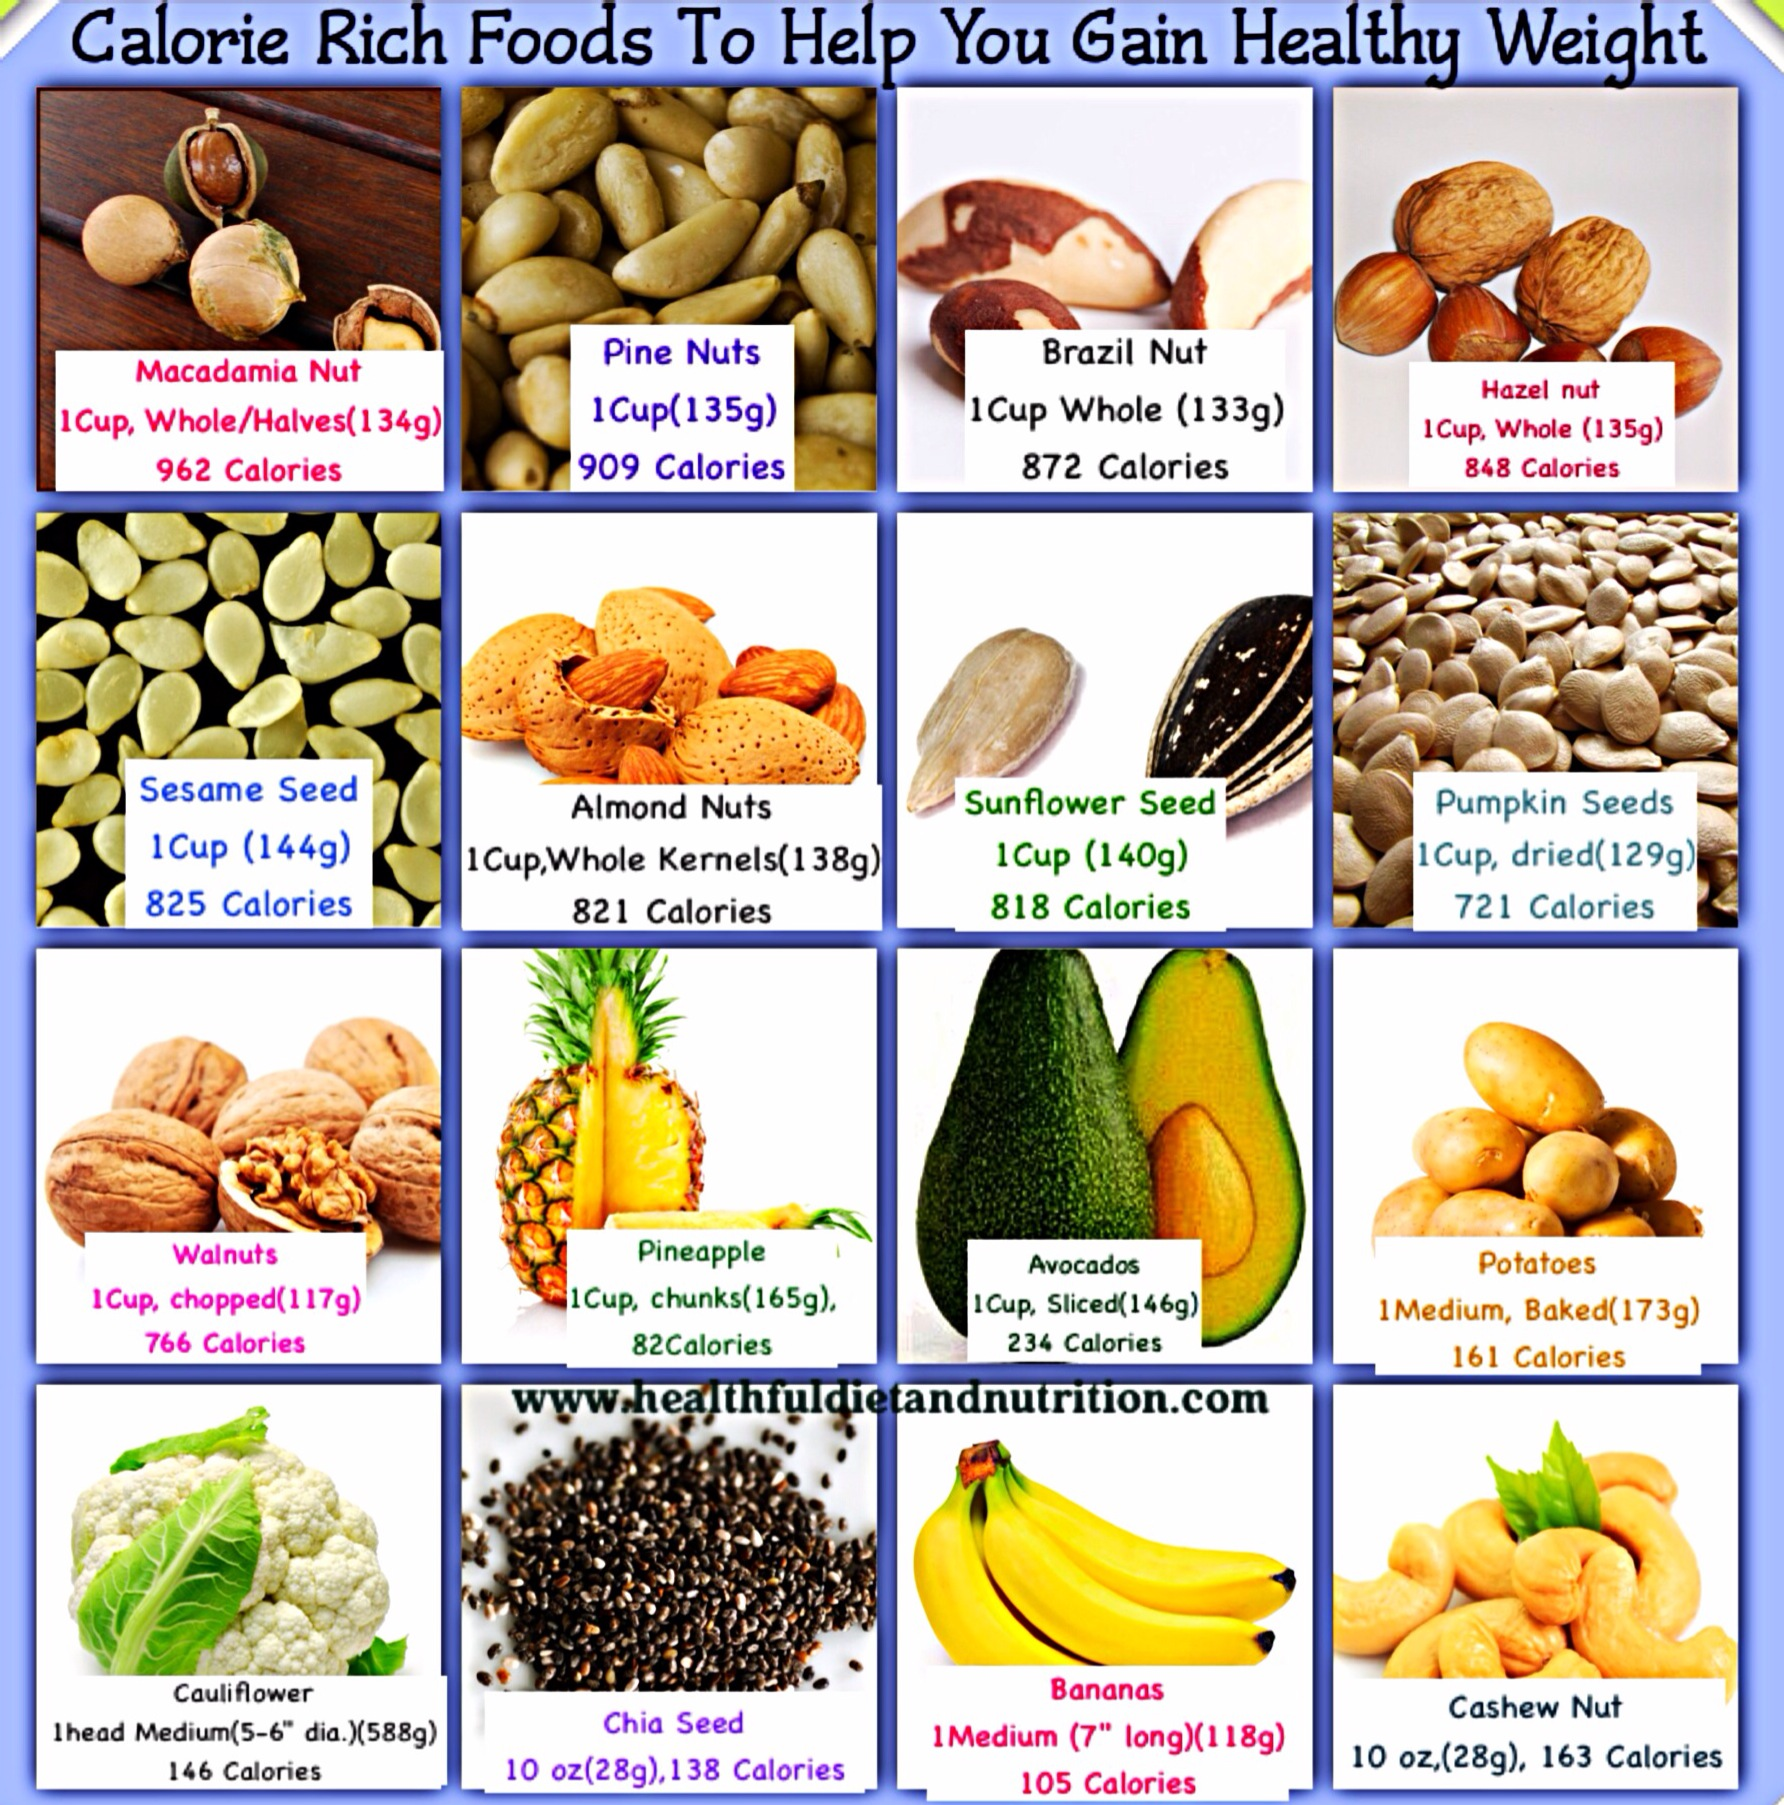 Calorie Rich Foods To Help You Gain Healthy Weight